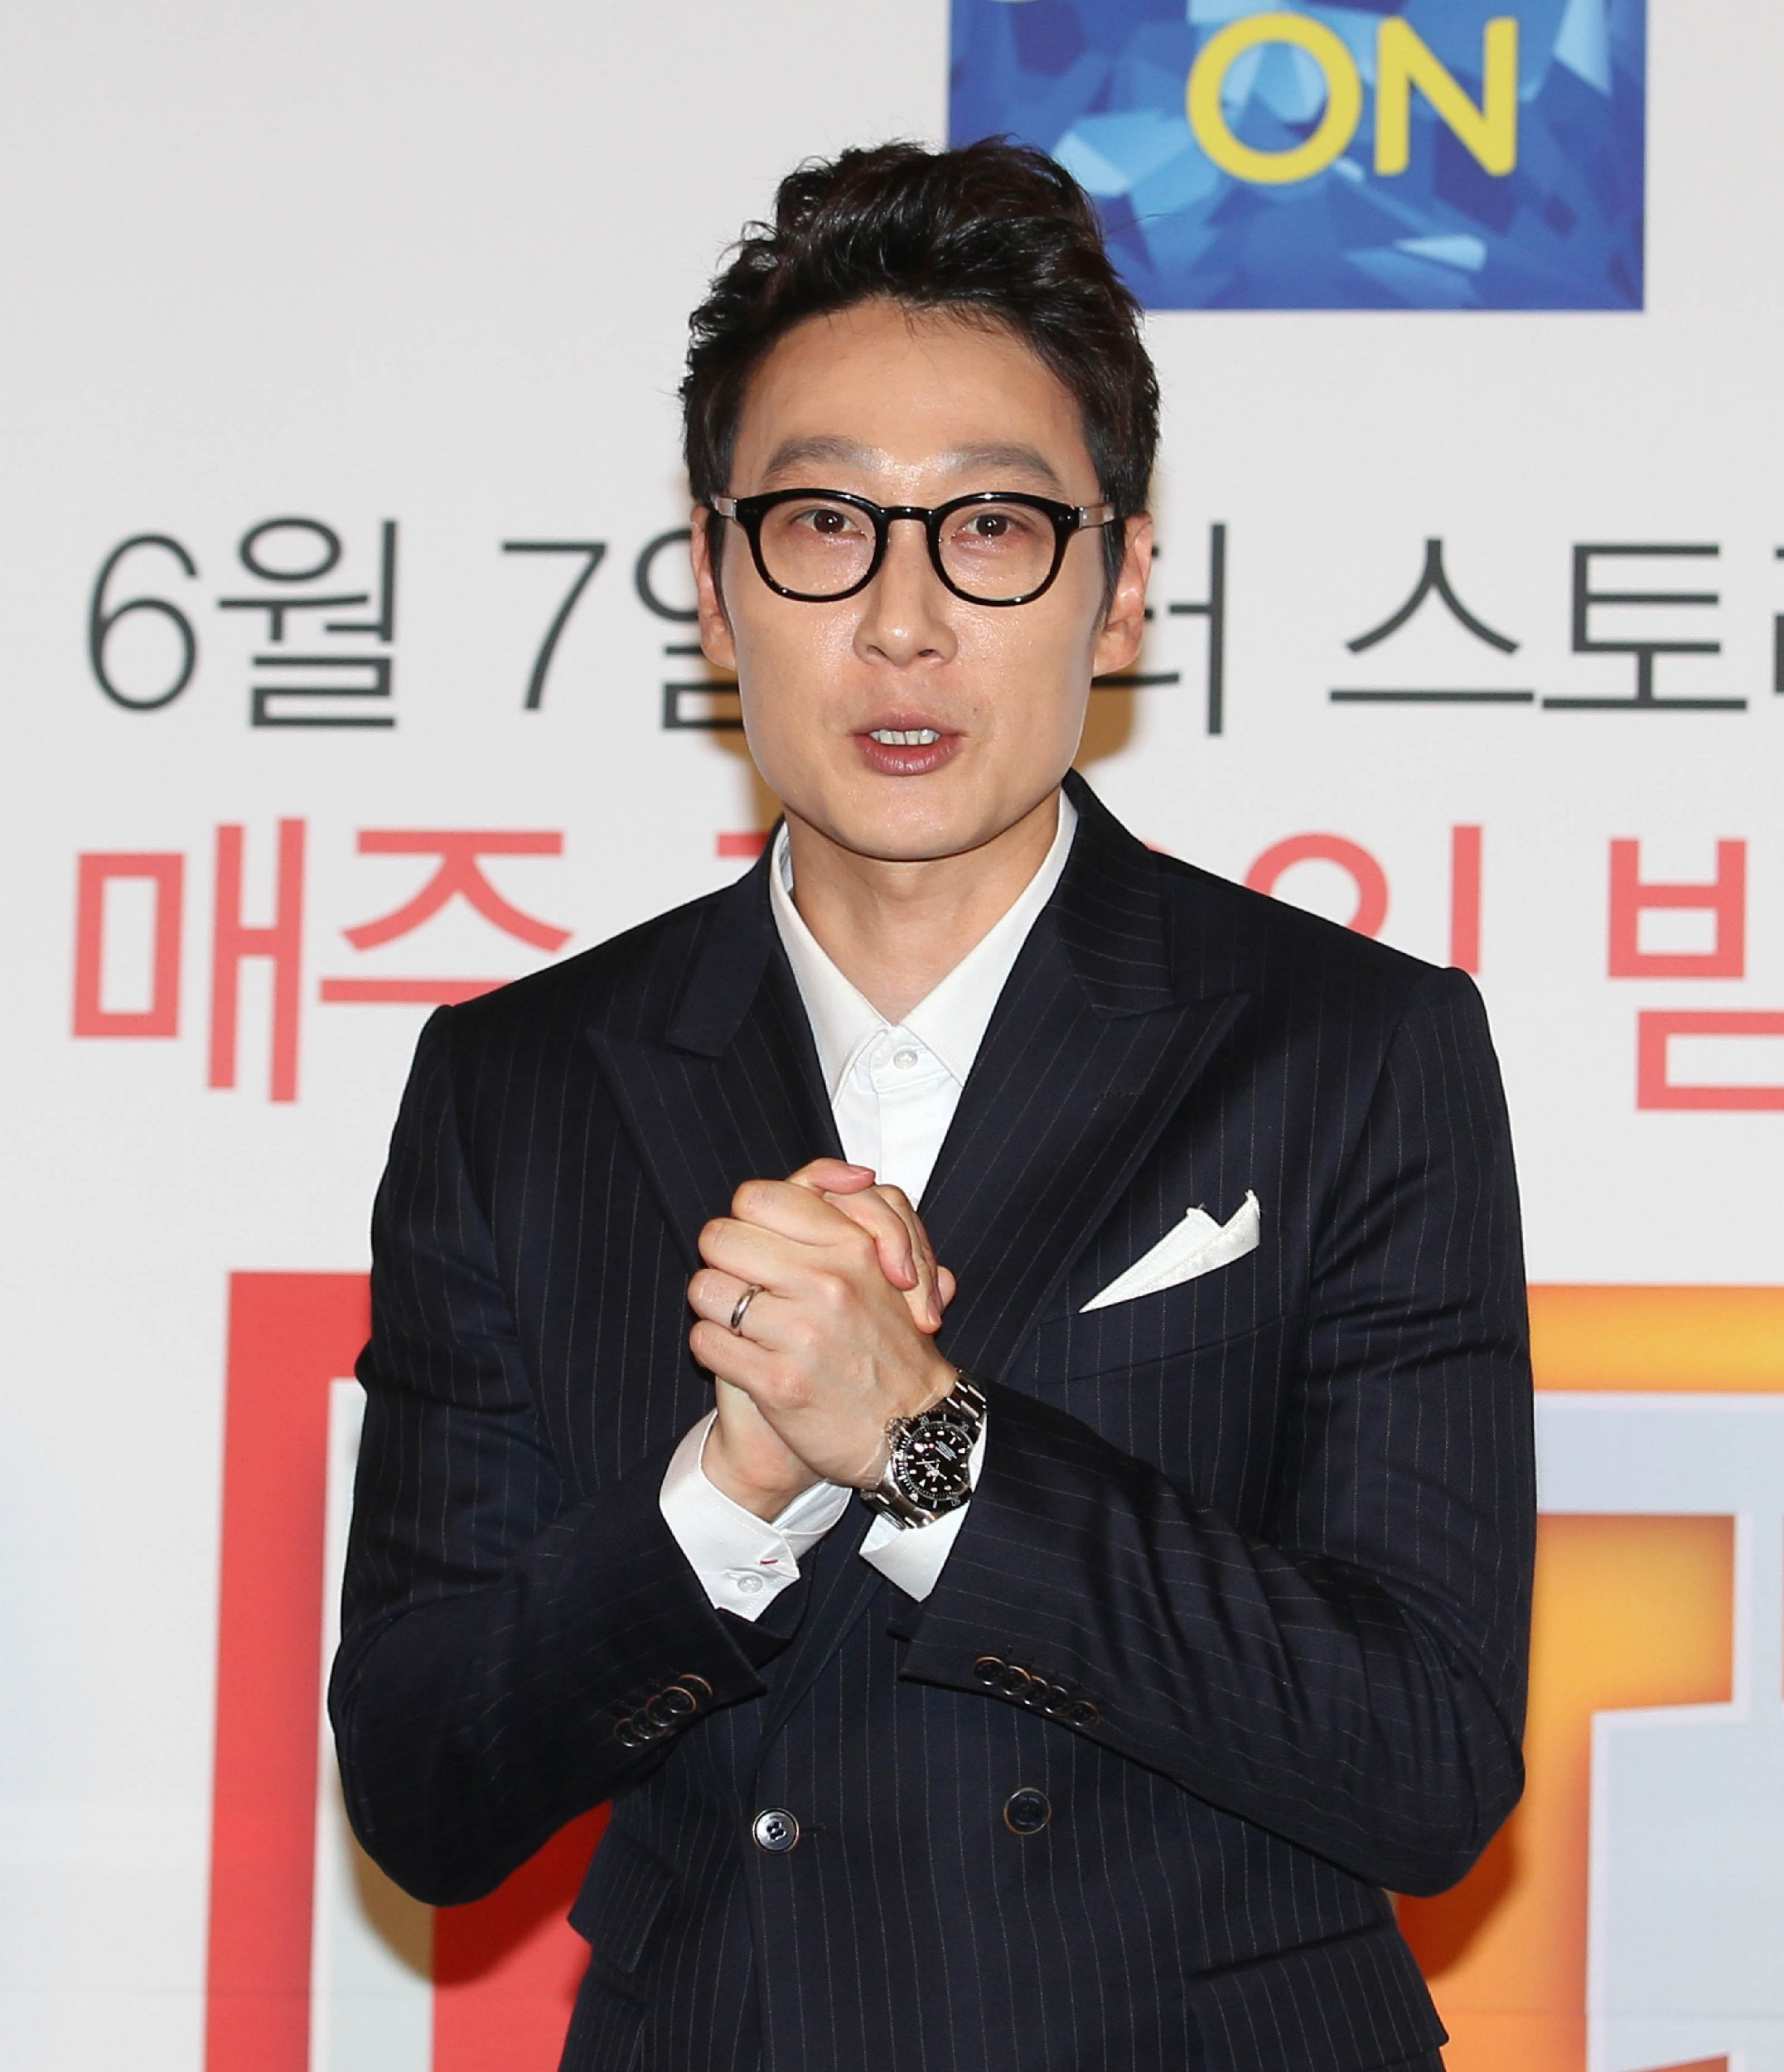 Lee Hwi Jae leaving South Korean show The Return Of Superman along with twin sons